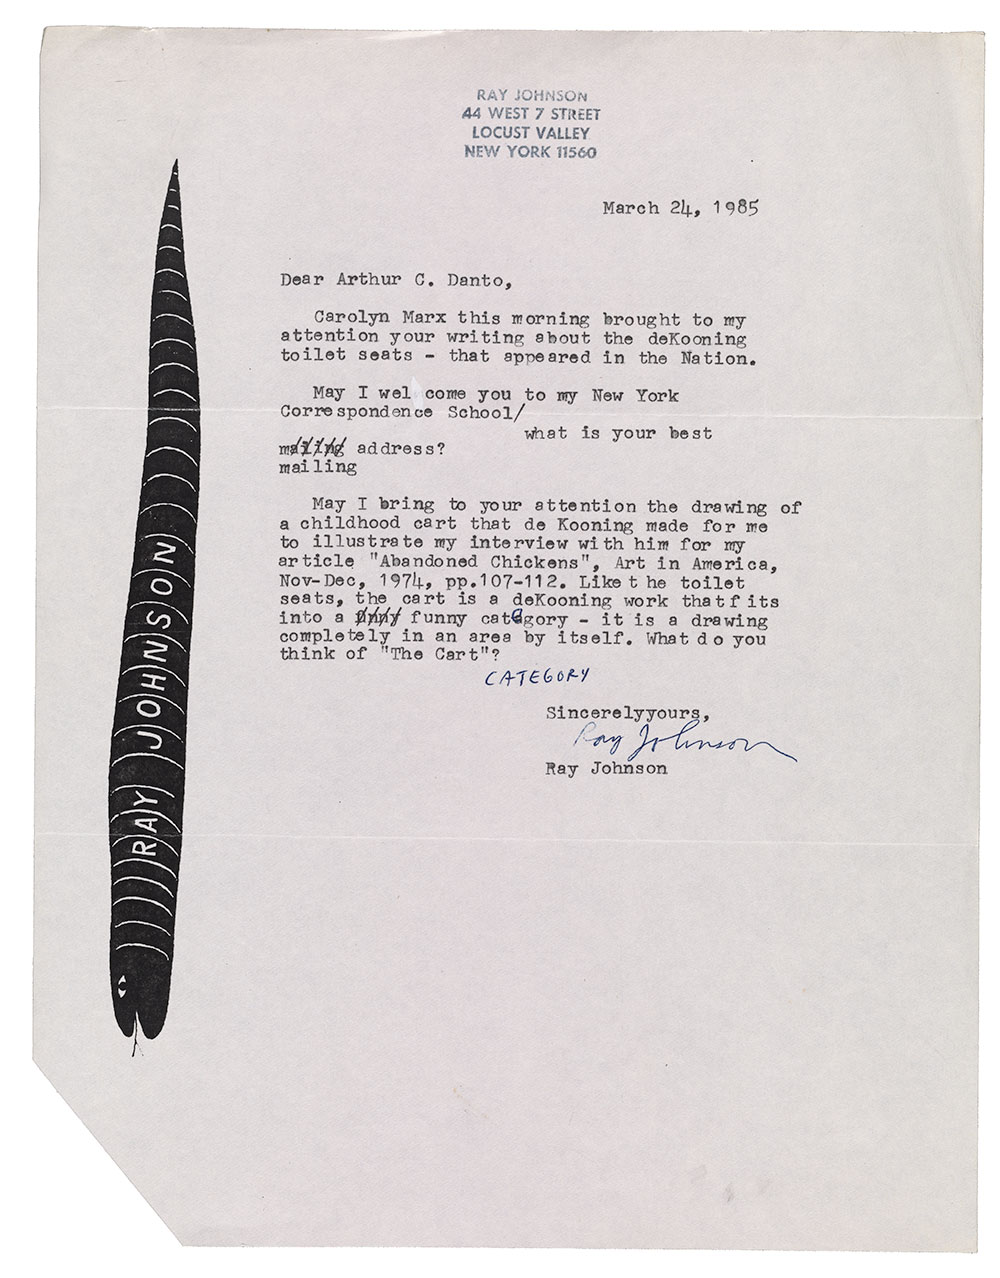 Letter to Arthur C. Danto from Ray Johnson